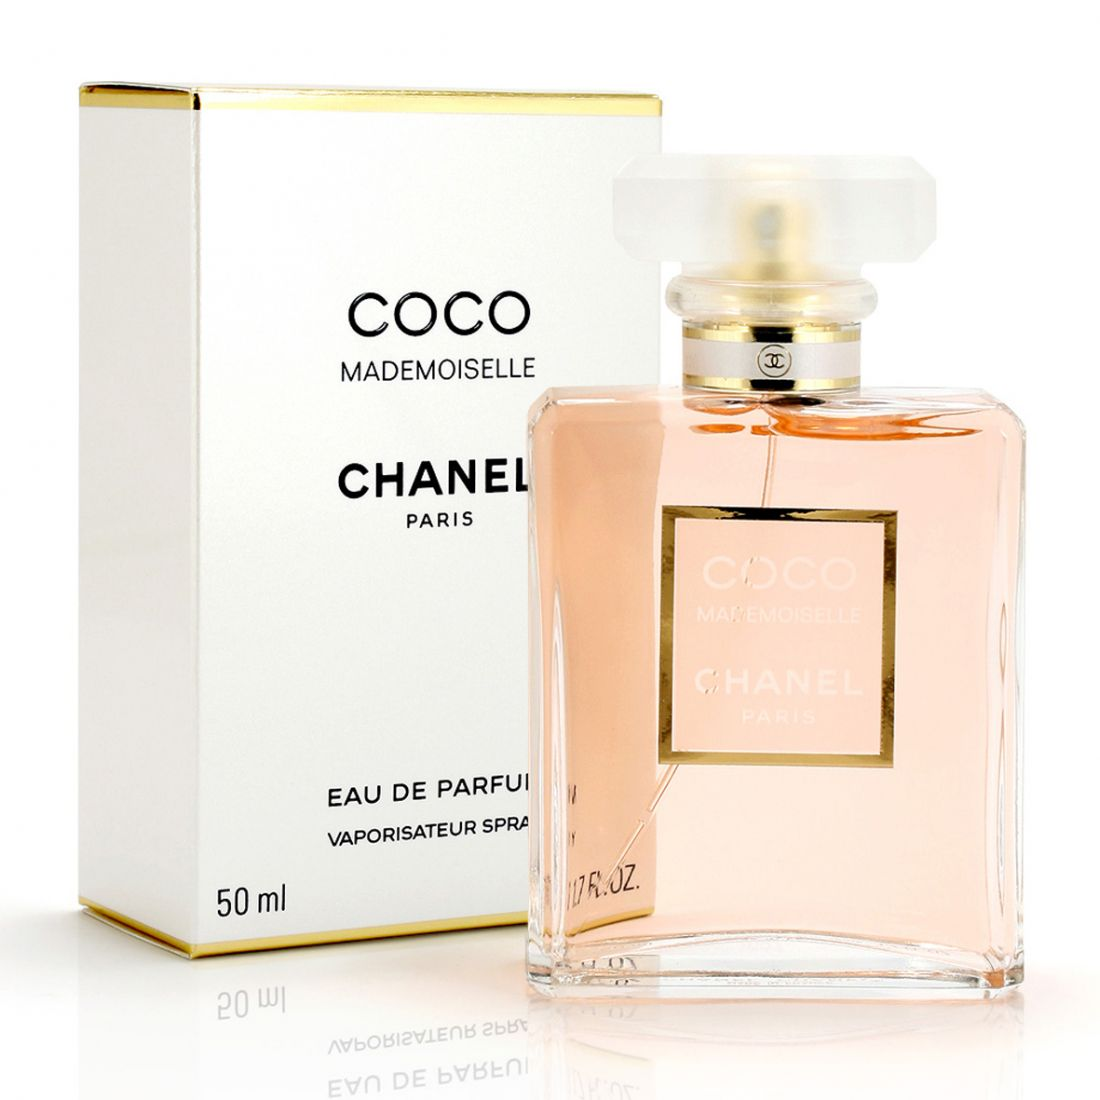 Chanel - Coco Mademoiselle, 50 ml